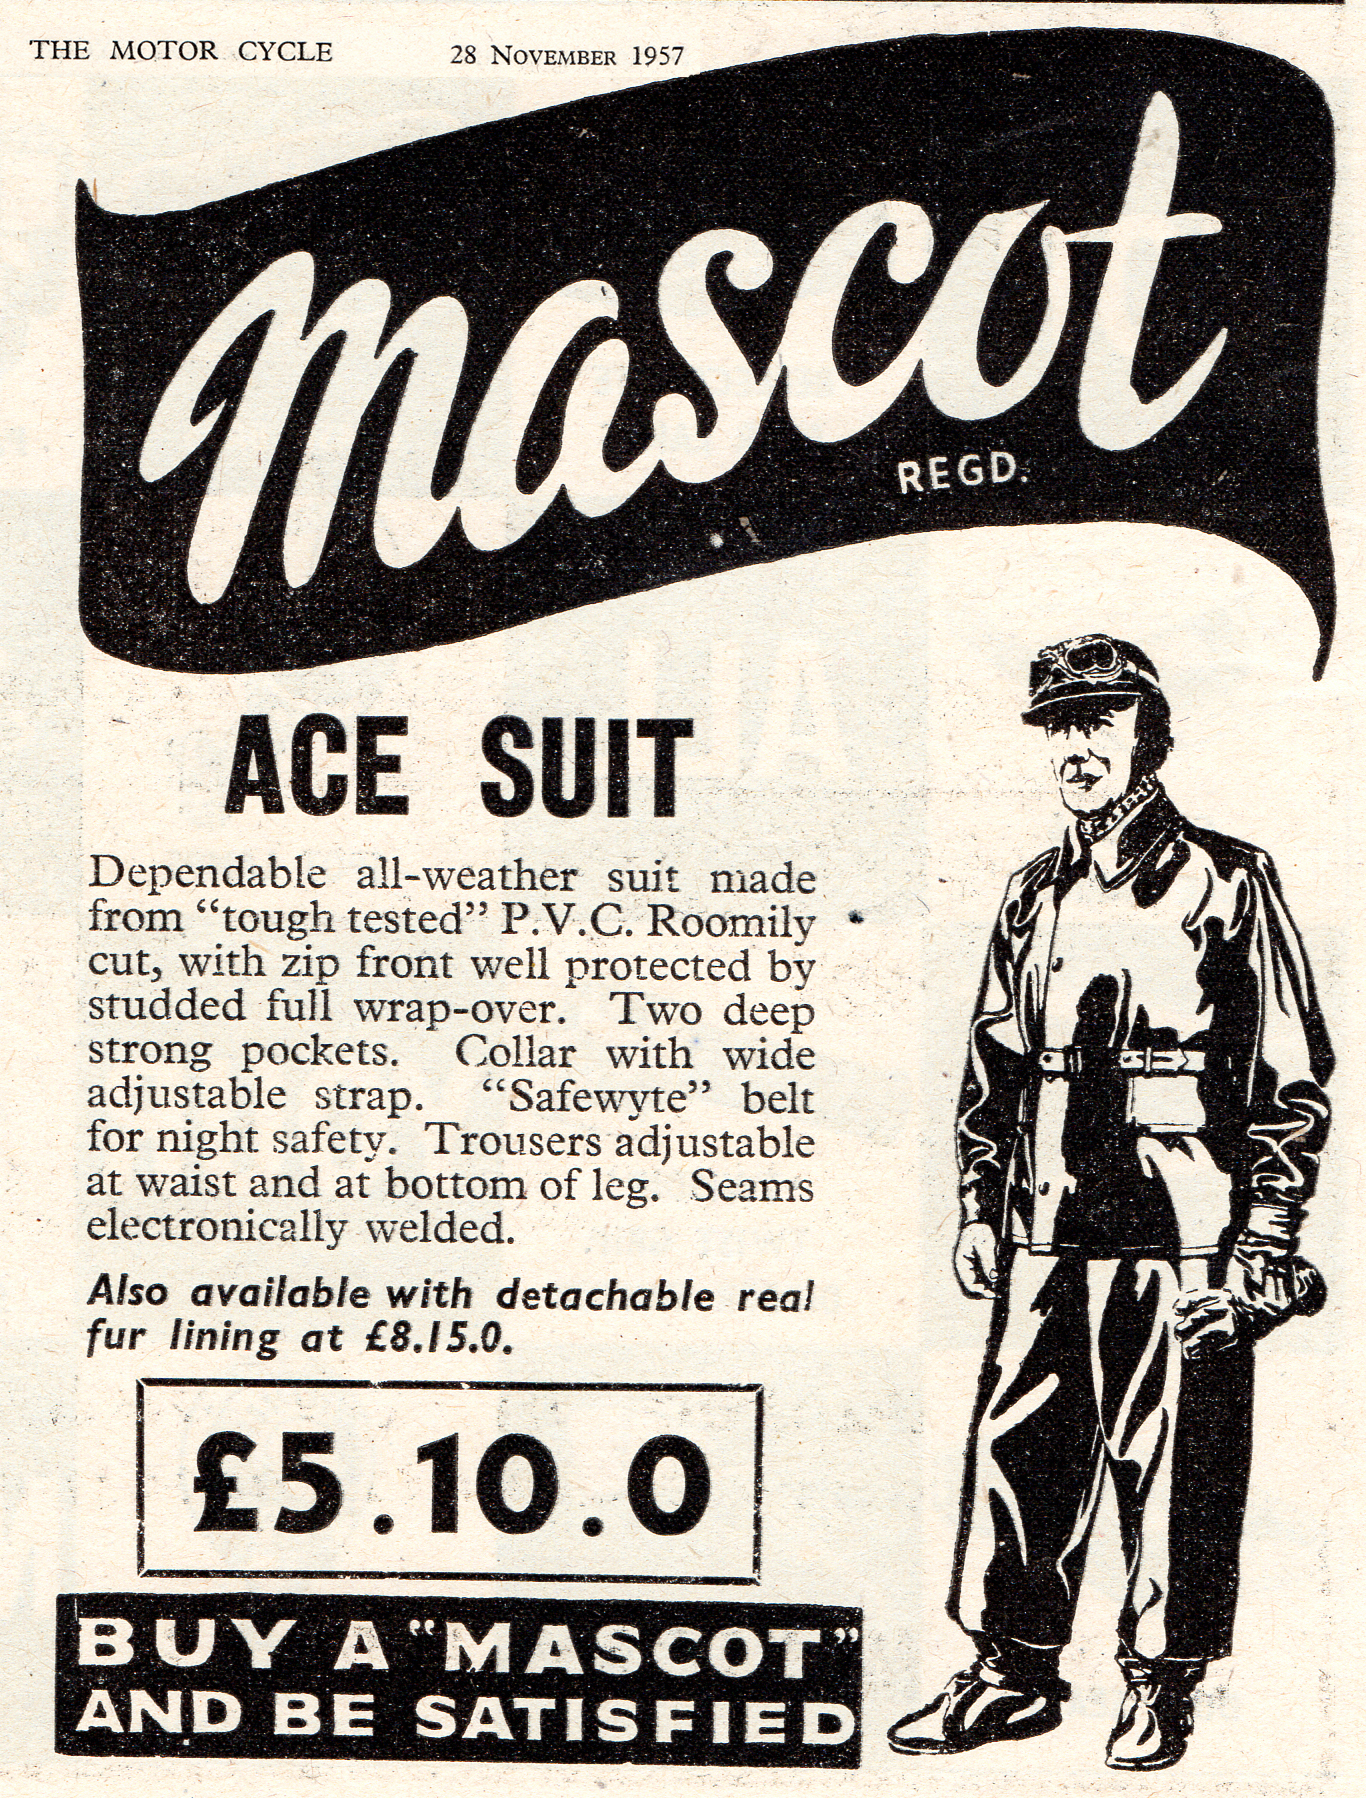 The Ace suit 1957